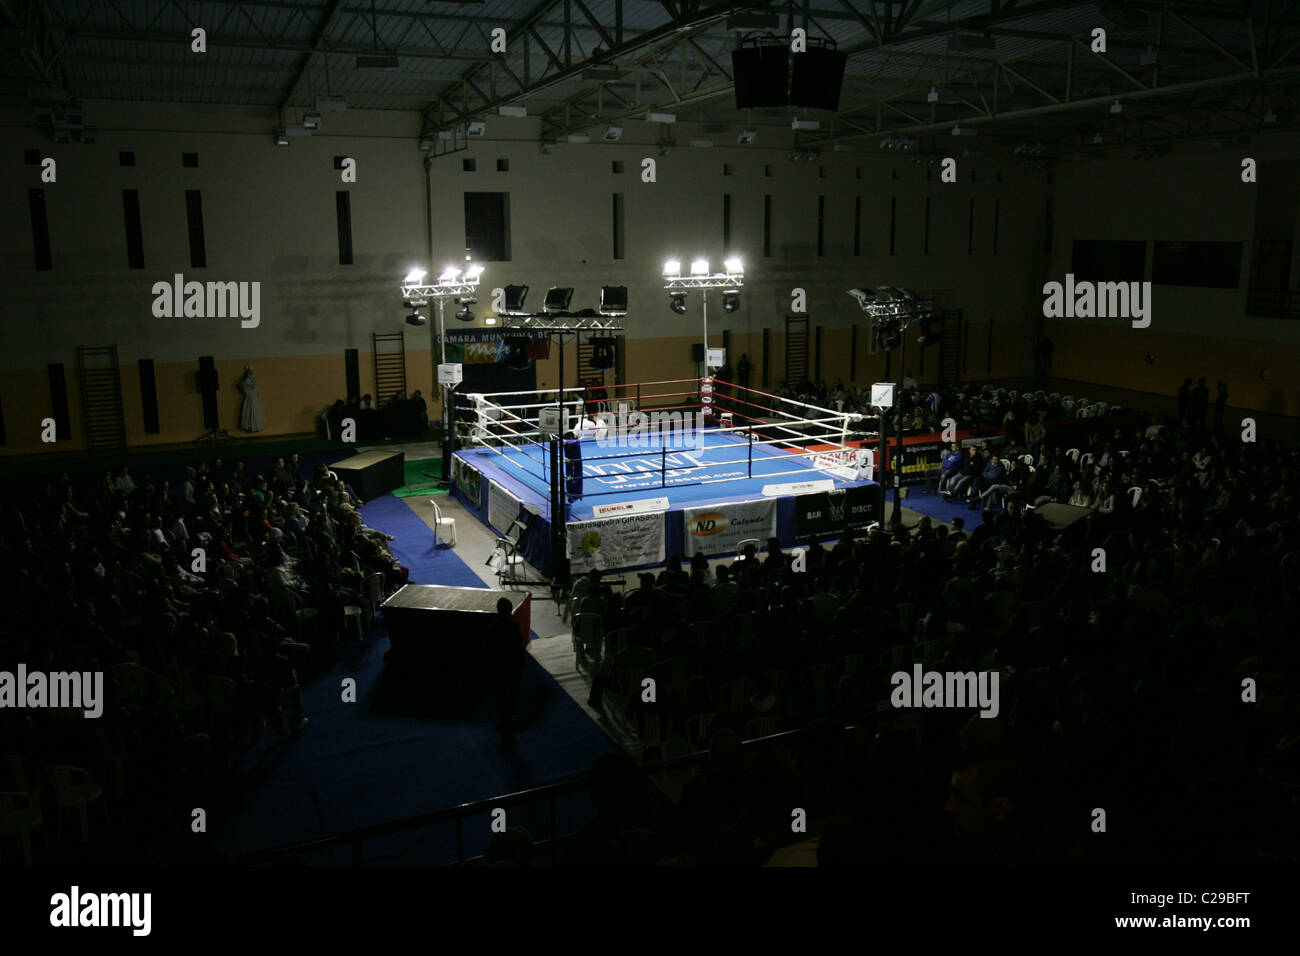 Empty boxing ring. - Stock Image